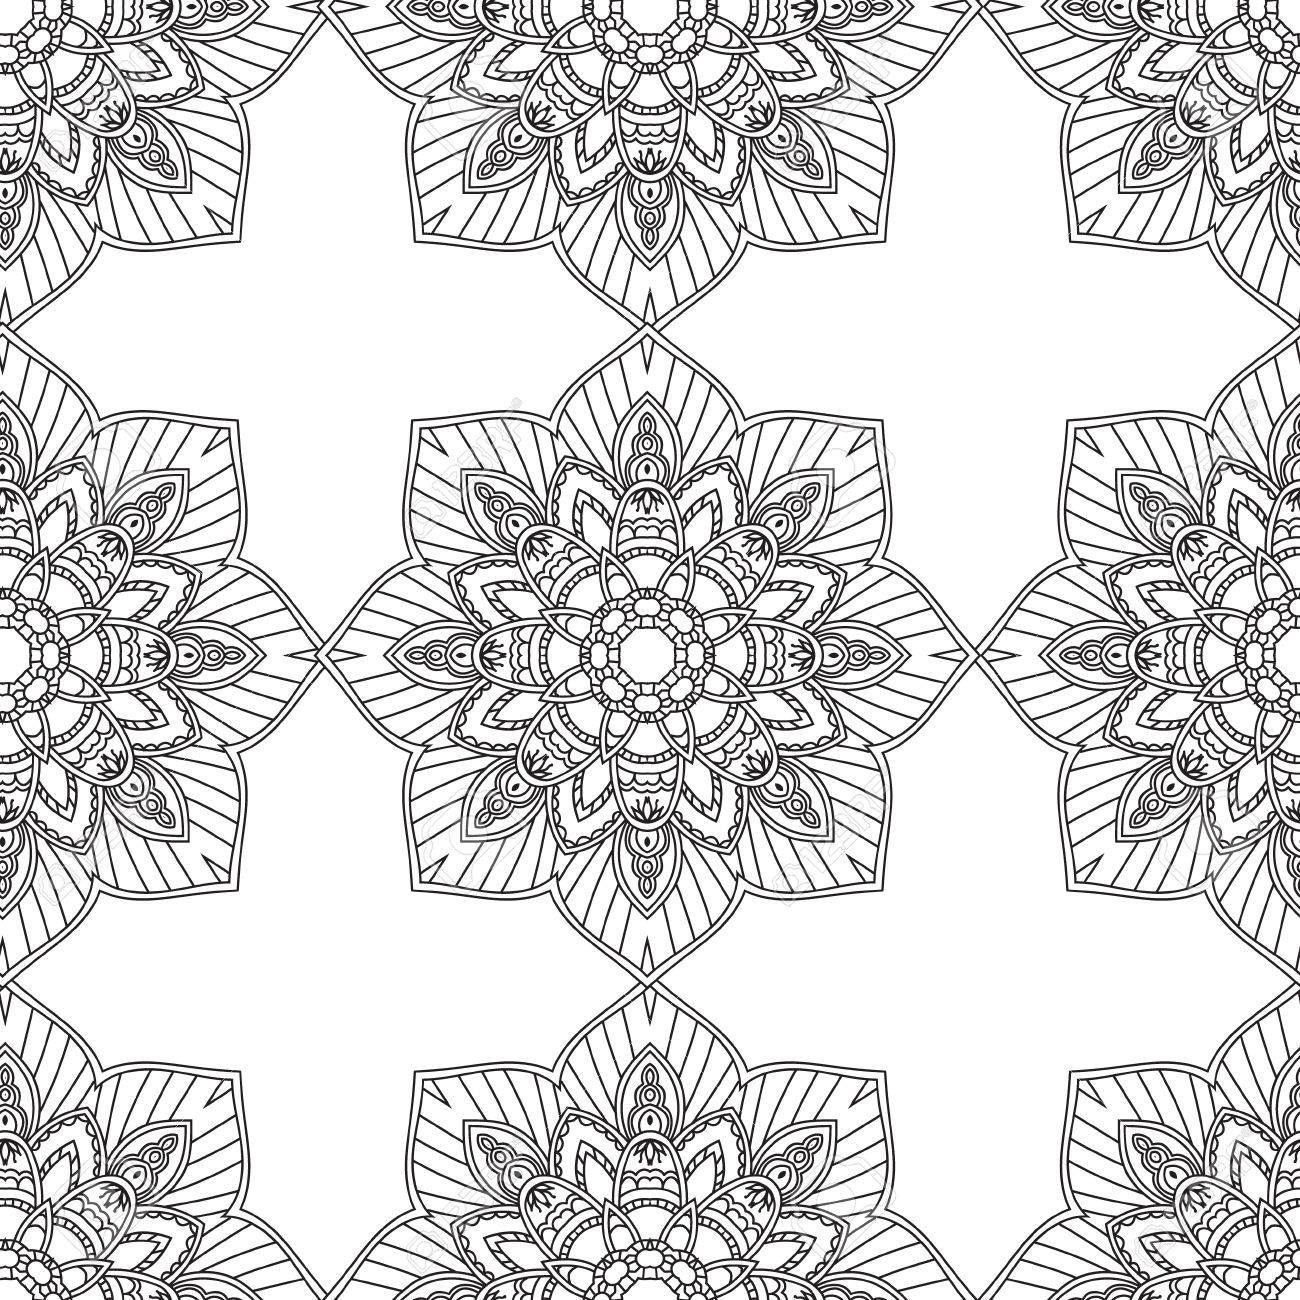 Coloring Pages For Adults BookDecorative Hand Drawn Doodle Nature Ornamental Mandala Vector